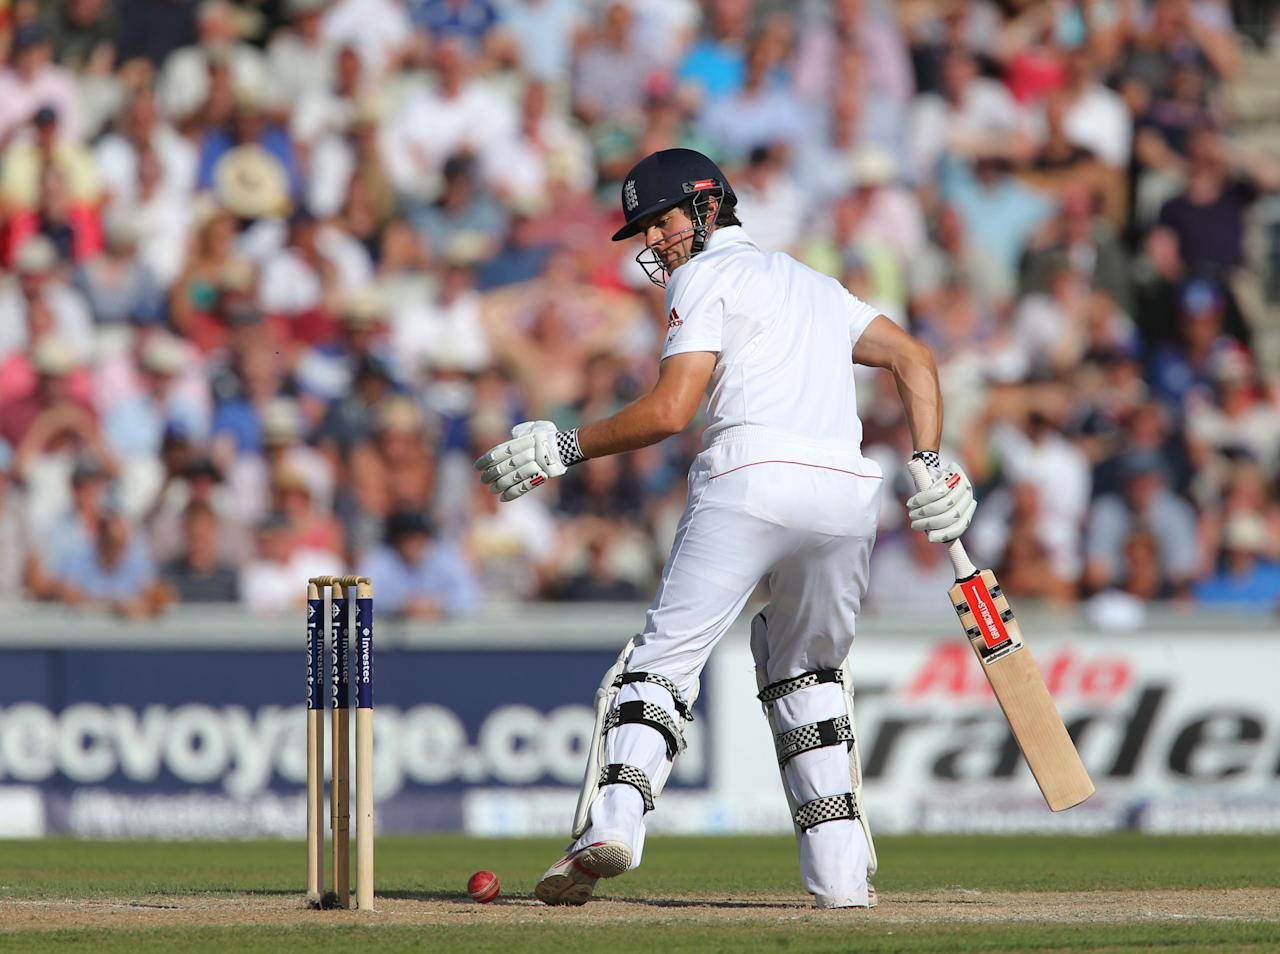 England batsman Alastair Cook watches the ball as it almost hits the wicket off Australia's bowler Shane Watson during day two of the Third Investec Ashes test match at Old Trafford Cricket Ground, Manchester.